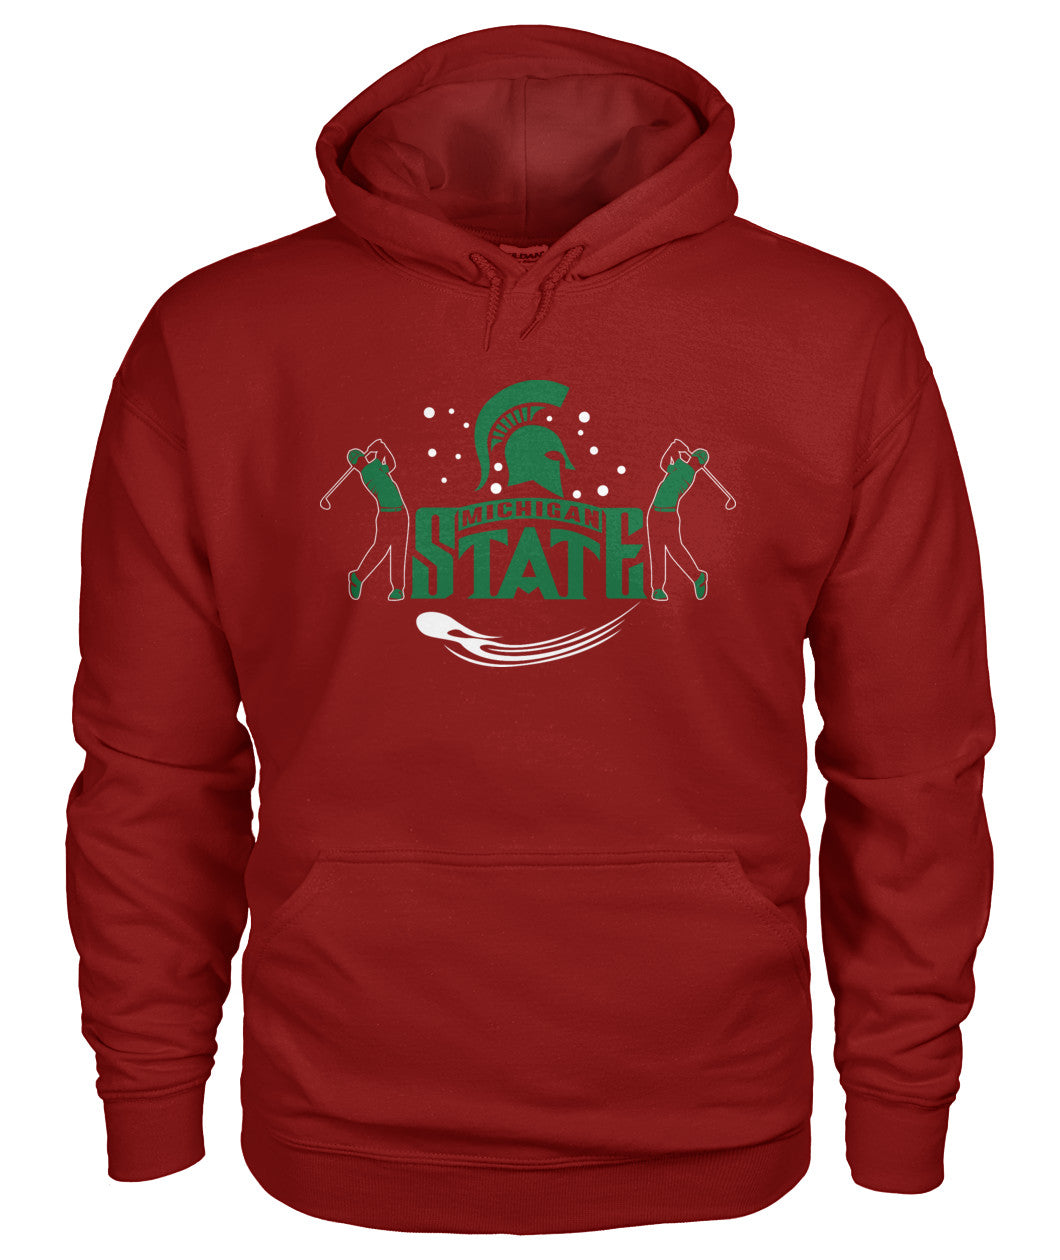 Michigan state funny golf shirt Gildan Hoodie